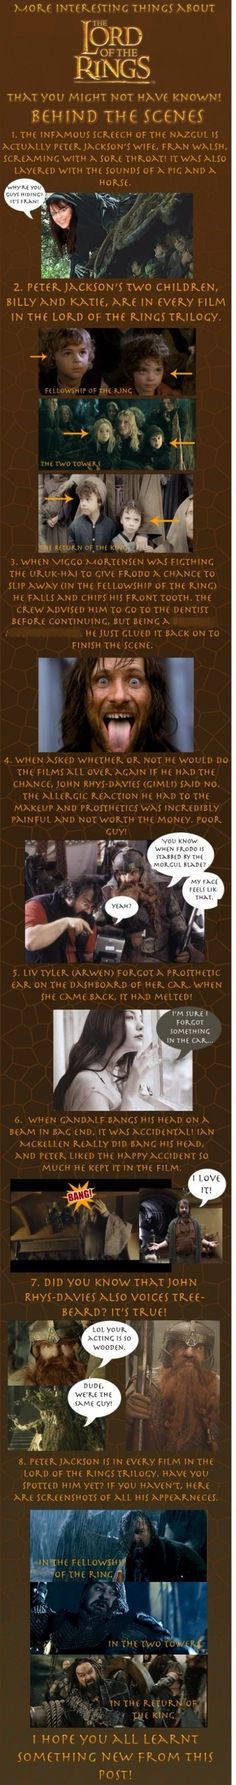 Fun facts about LOTR